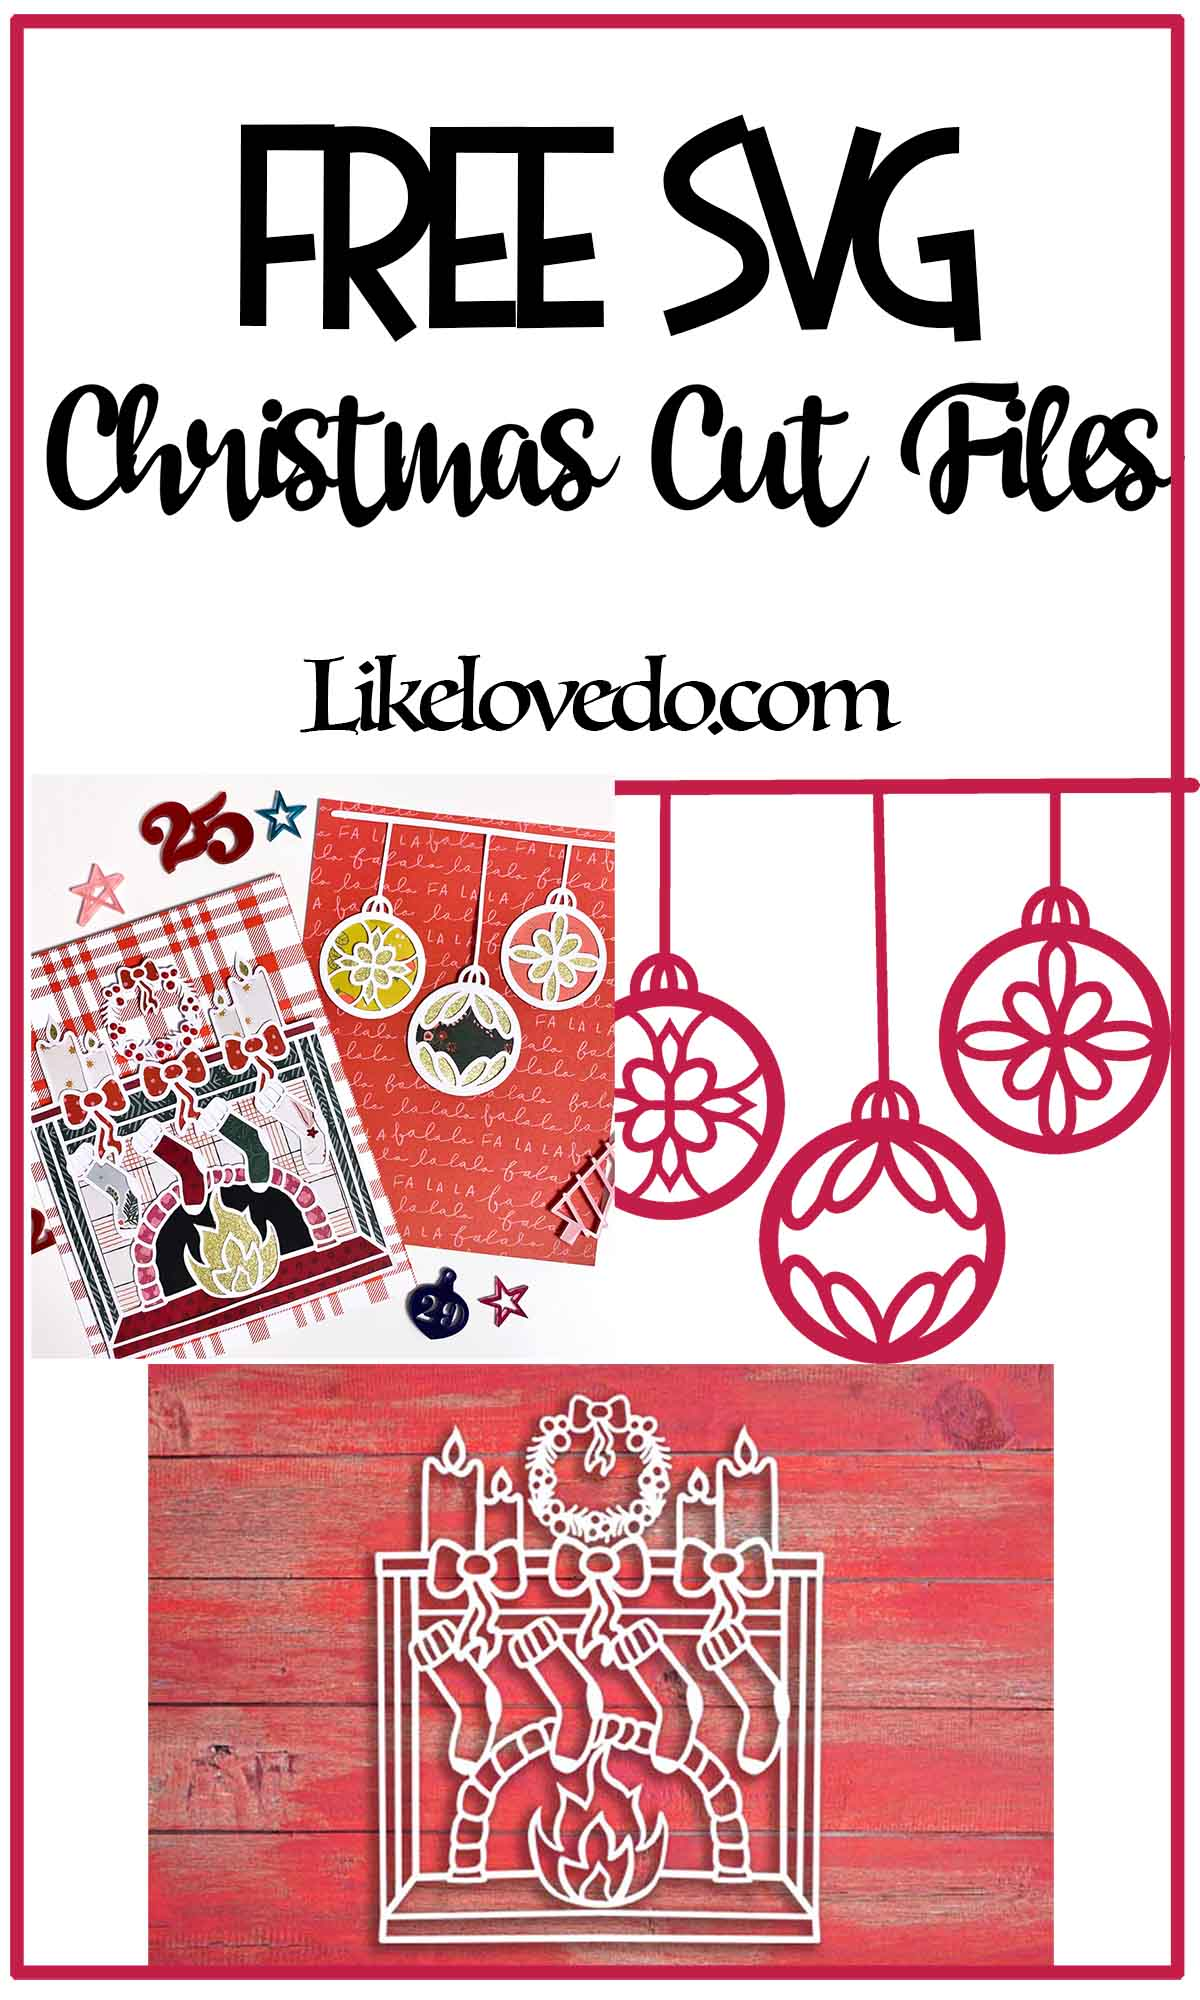 Free Christmas scrapbooking cut files fireplace and bauble SVG for scrapbooking